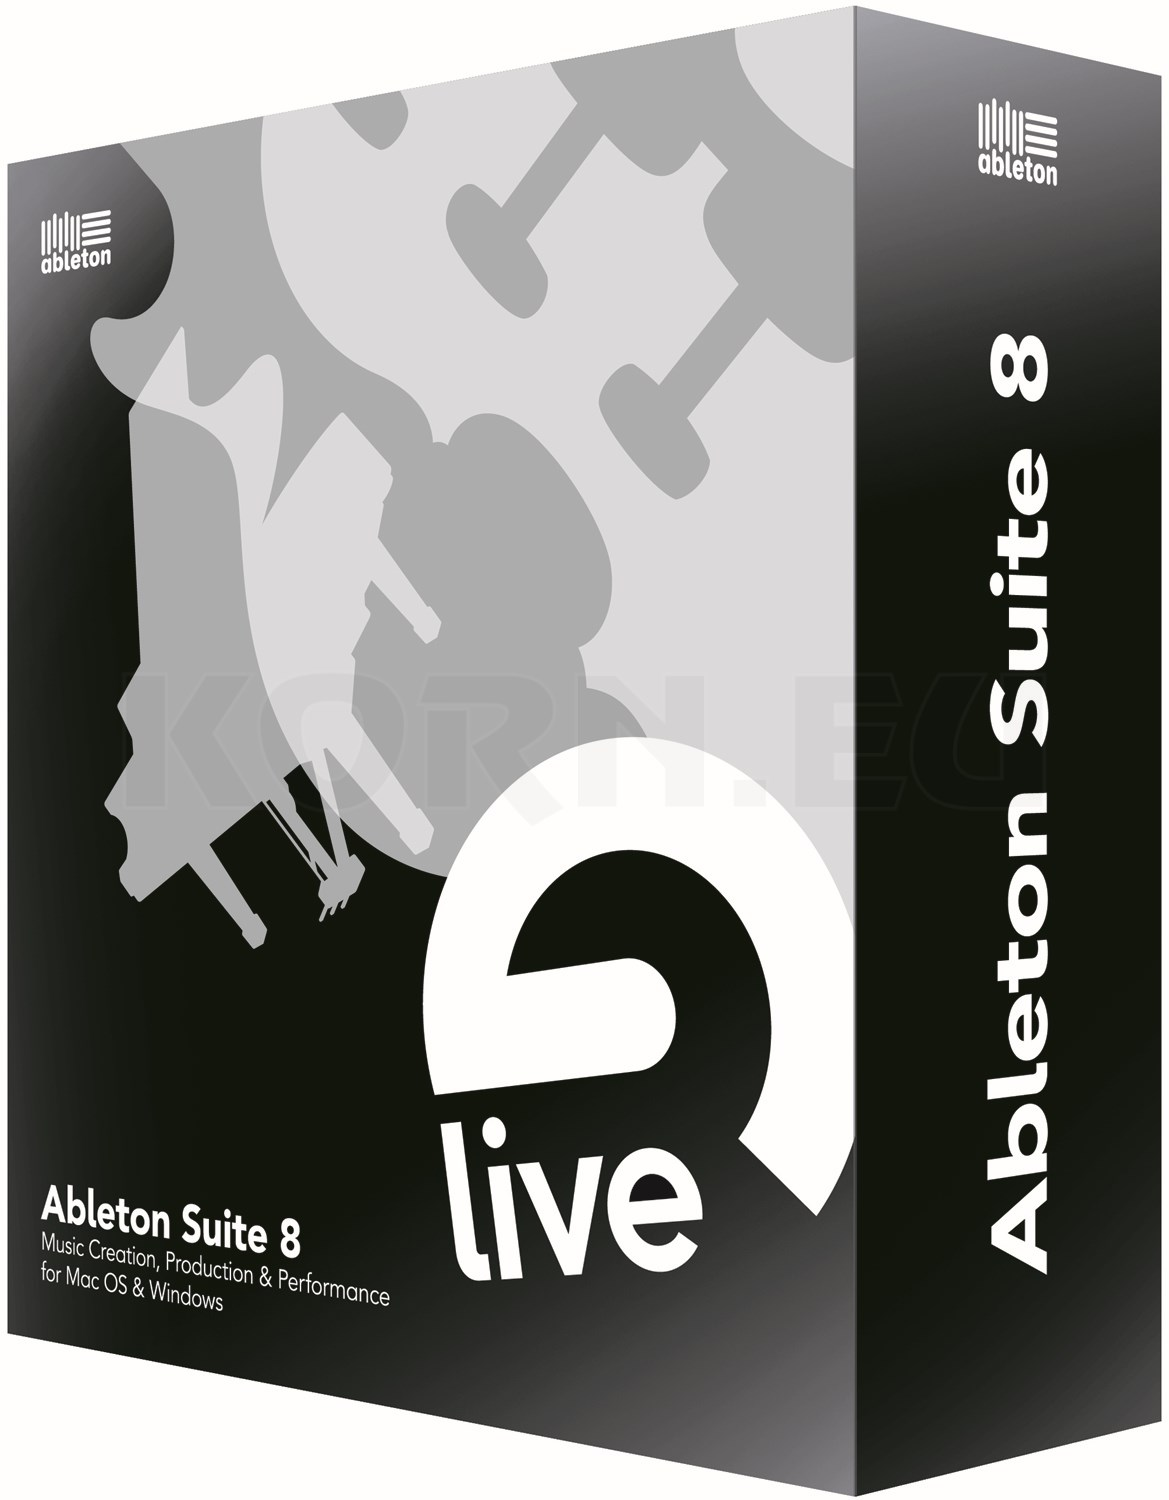 ableton suite 8 upgrade von live lite englisch musikhaus. Black Bedroom Furniture Sets. Home Design Ideas